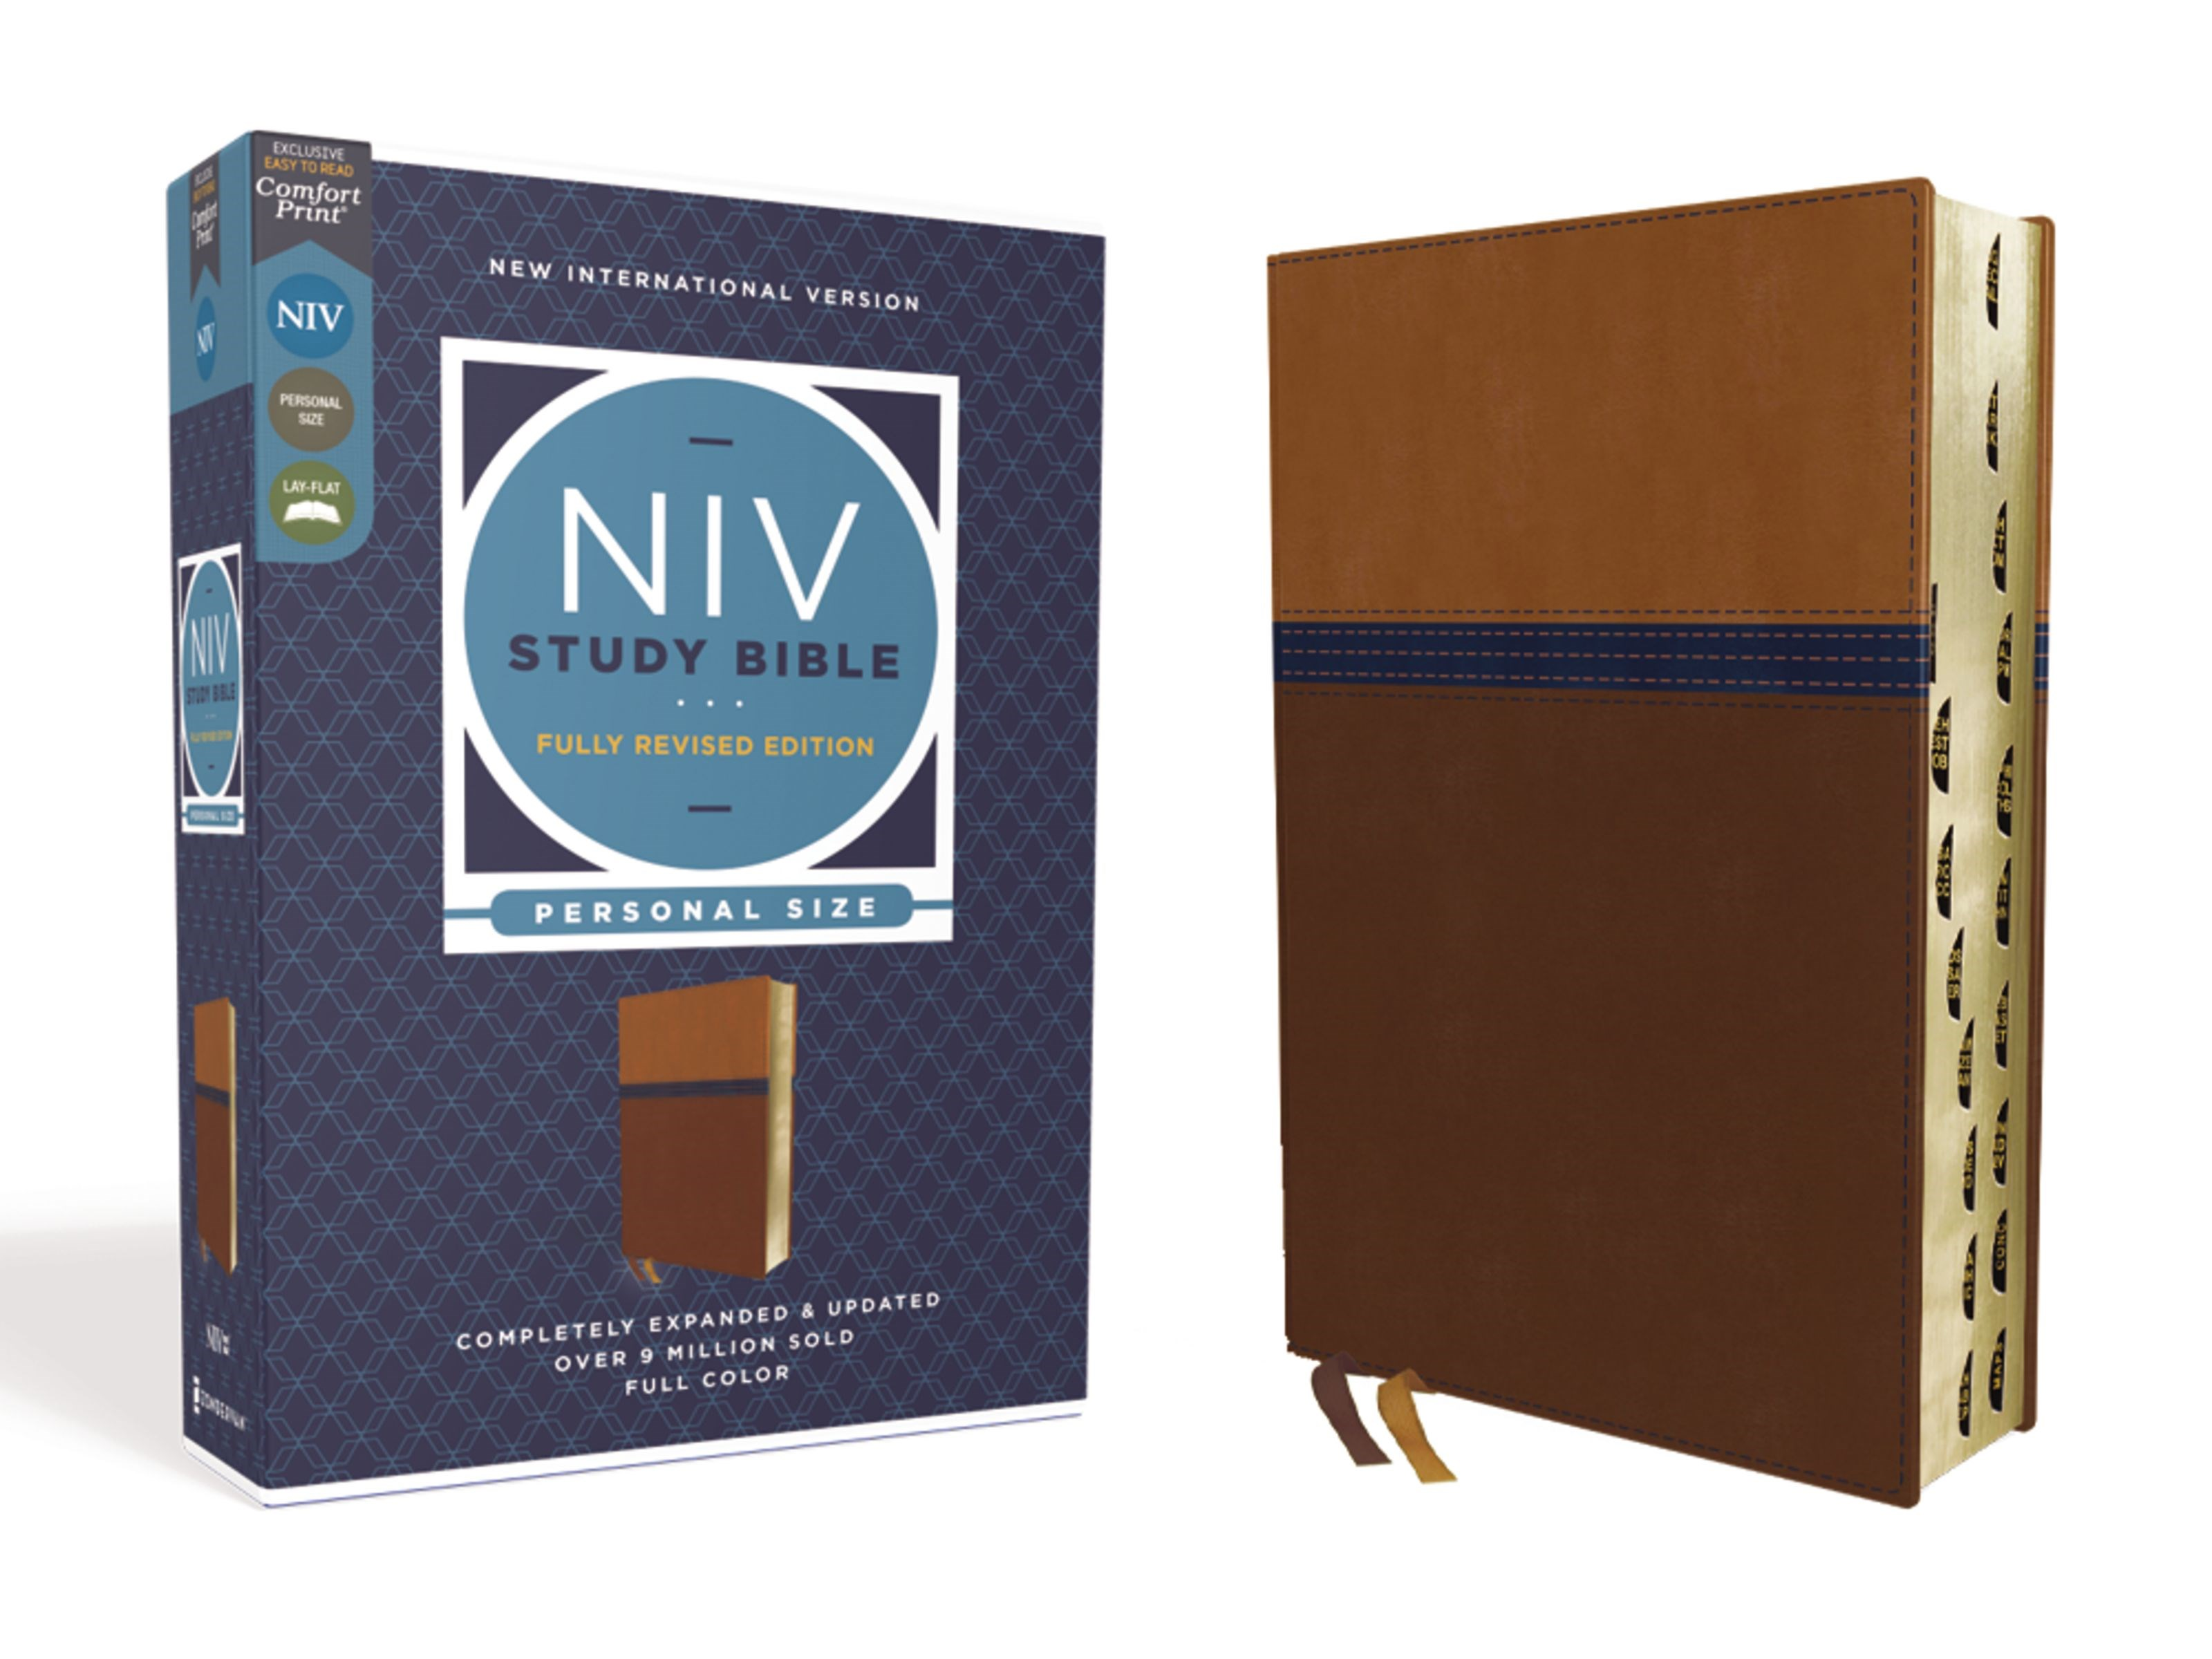 NIV Study Bible/Personal Size (Fully Revised Edition) (Comfort Print)-Brown/Blue Leathersoft Indexed